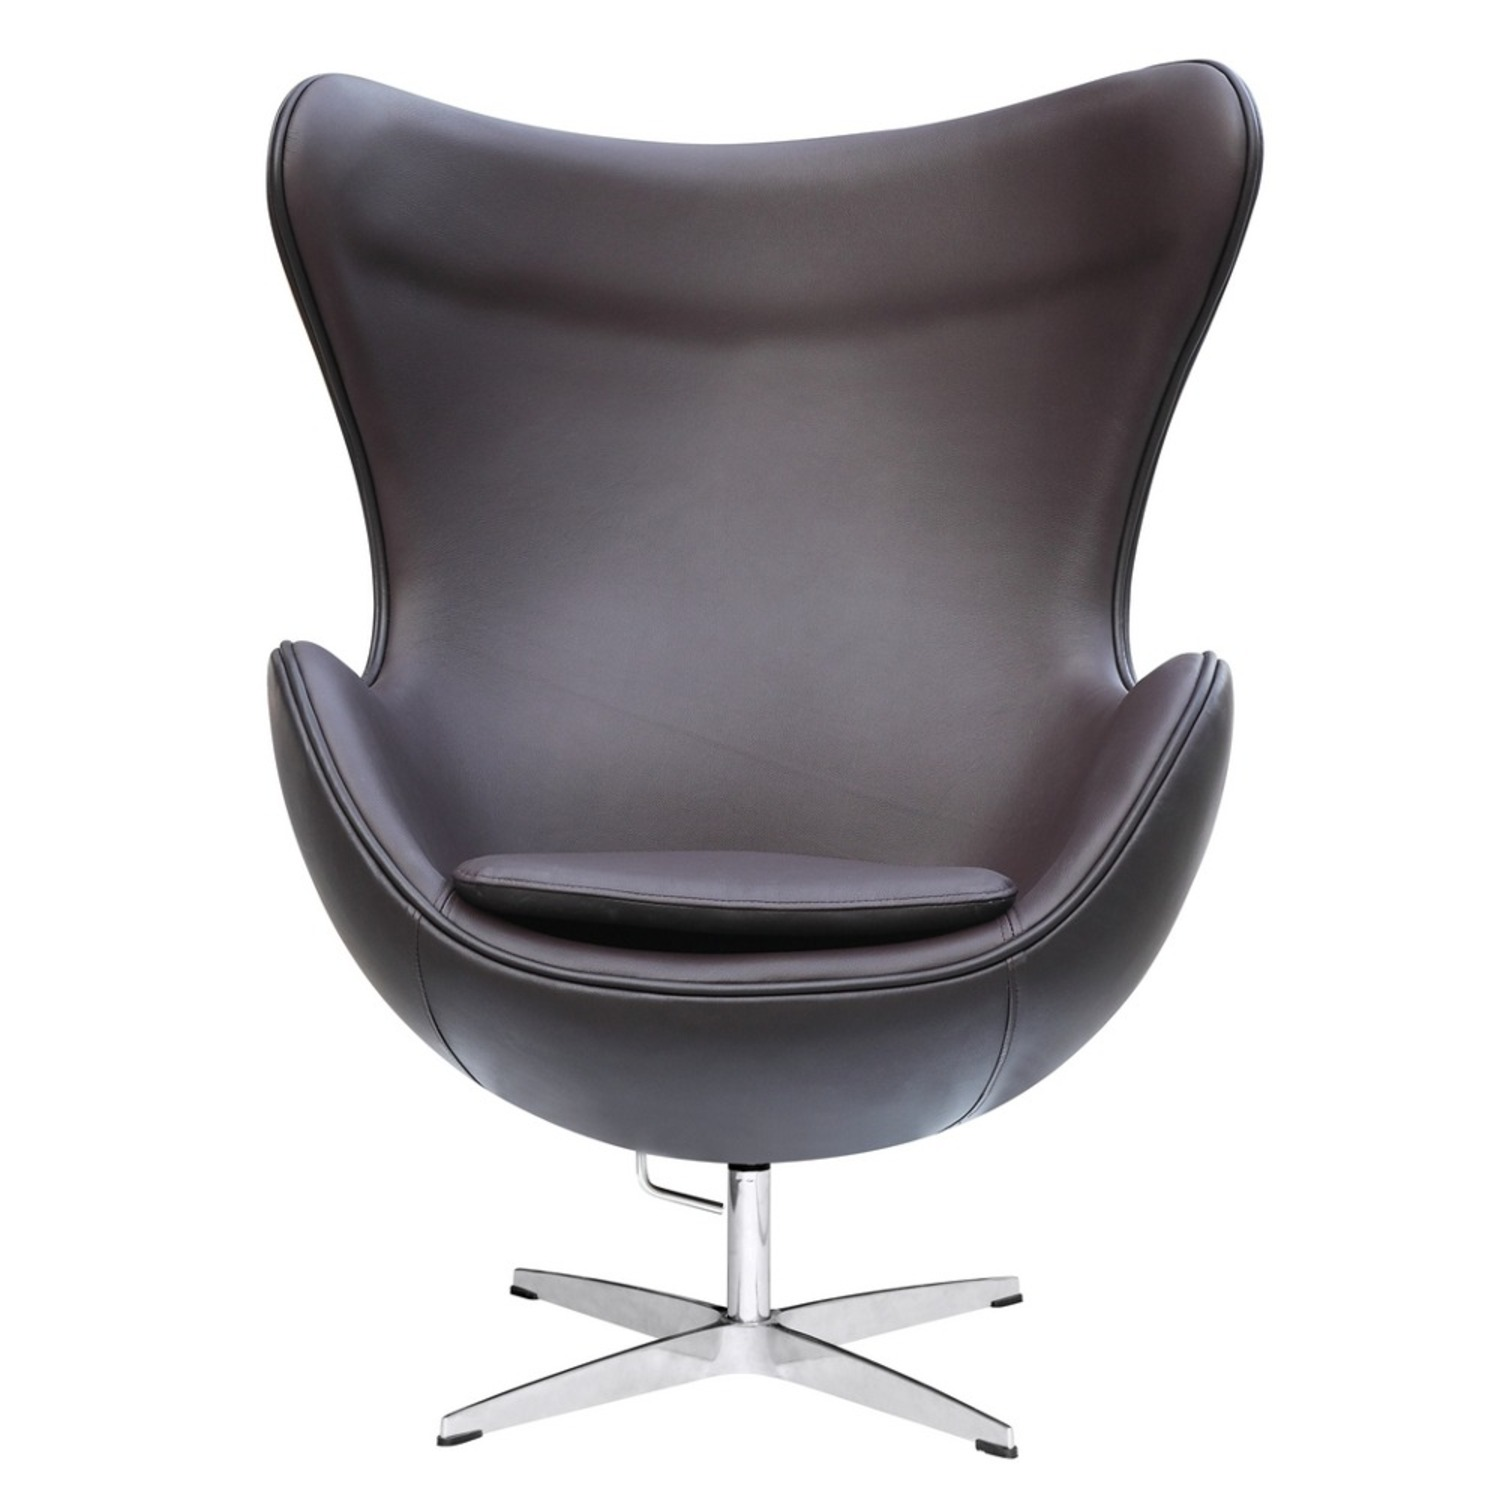 Inner Chair In Brown Leather W/ Fiberglass Frame - image-5